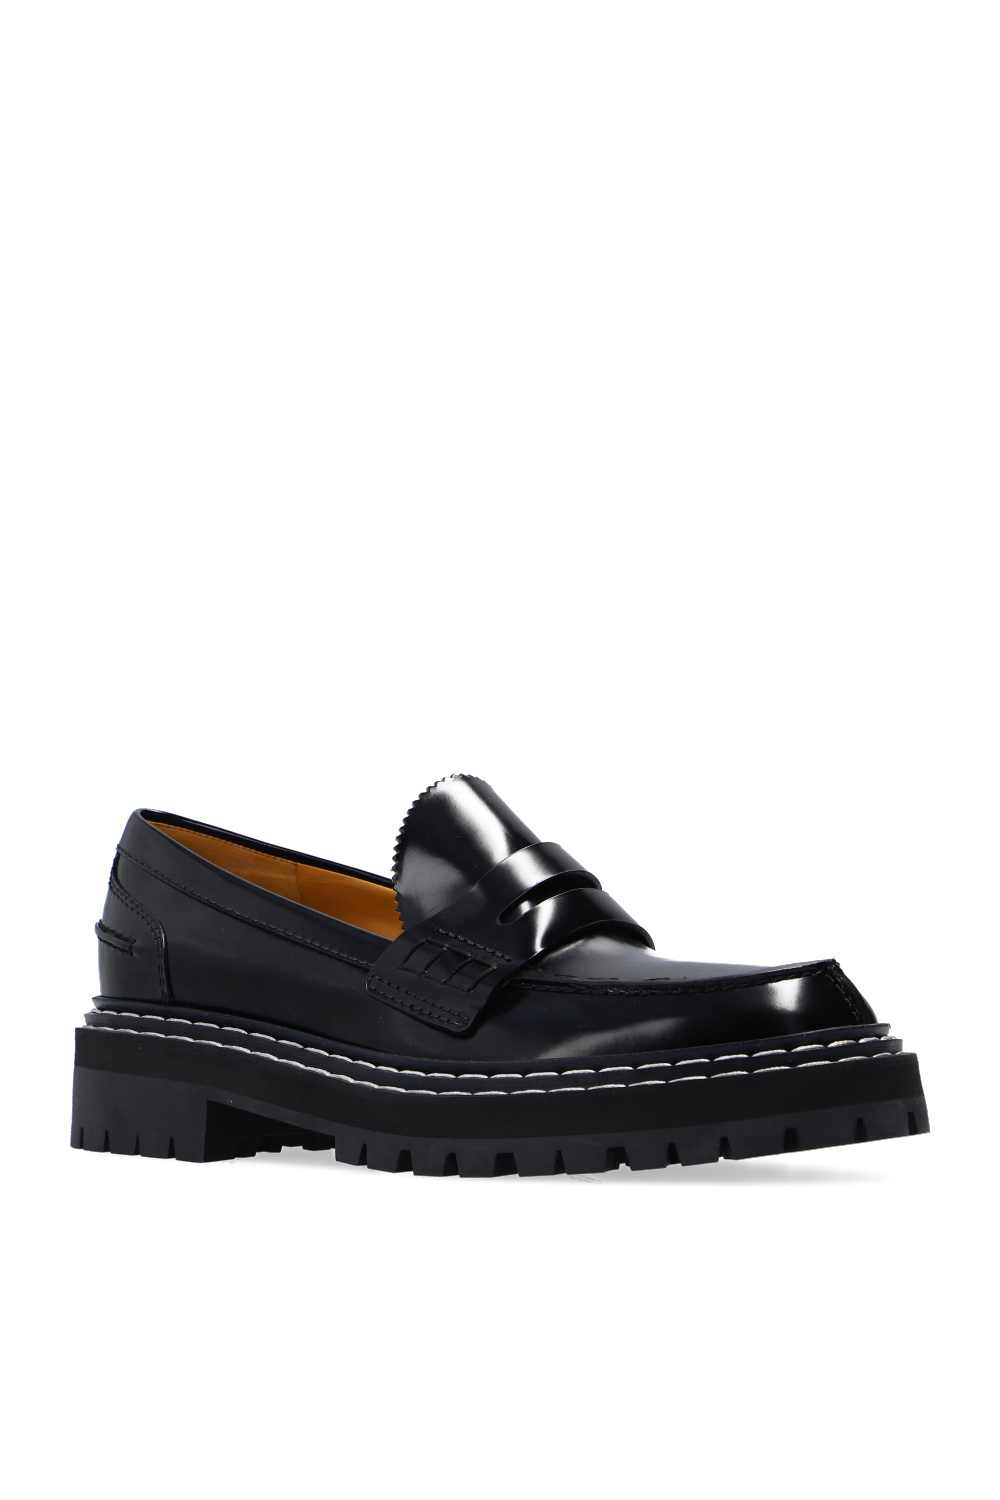 Proenza Schouler Leather loafers